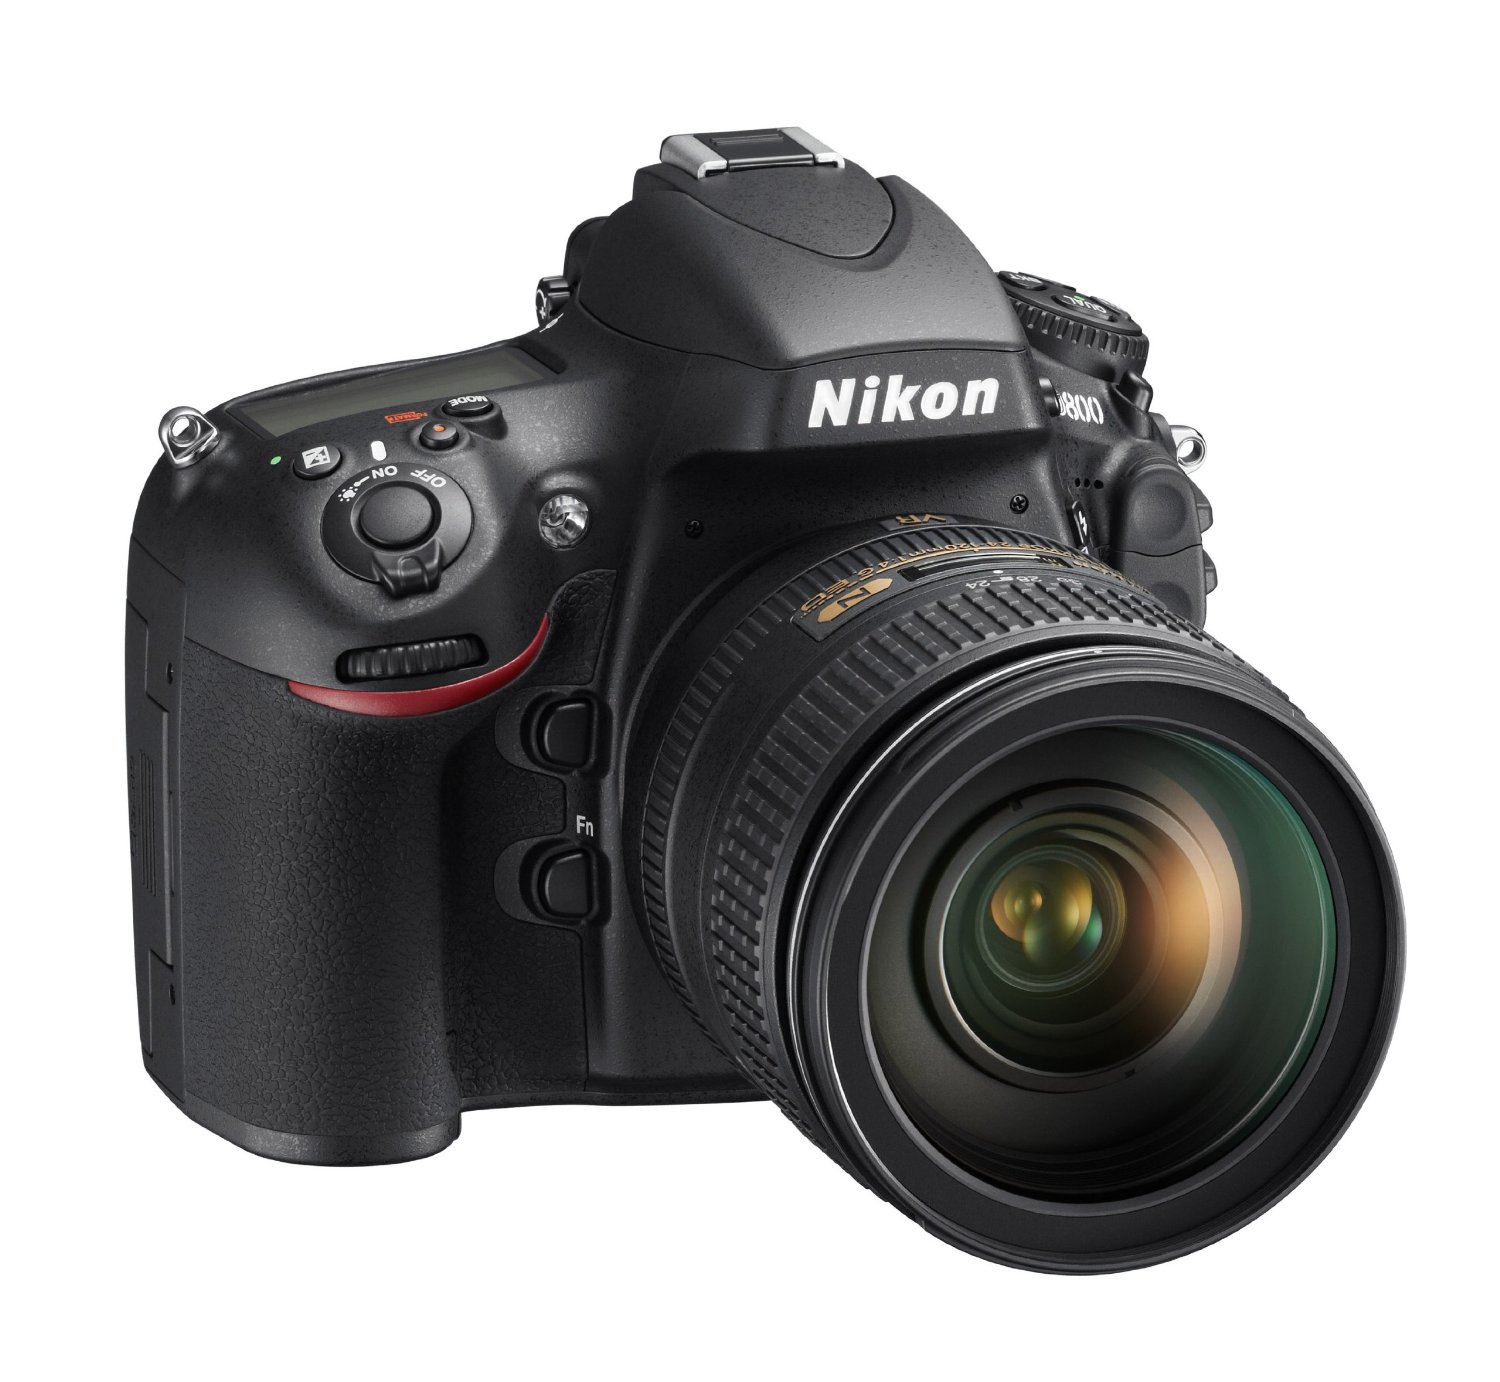 Camera Nikon D800 Dslr Camera best price nikon d800 36 3 mp cmos digital slr camera the camera